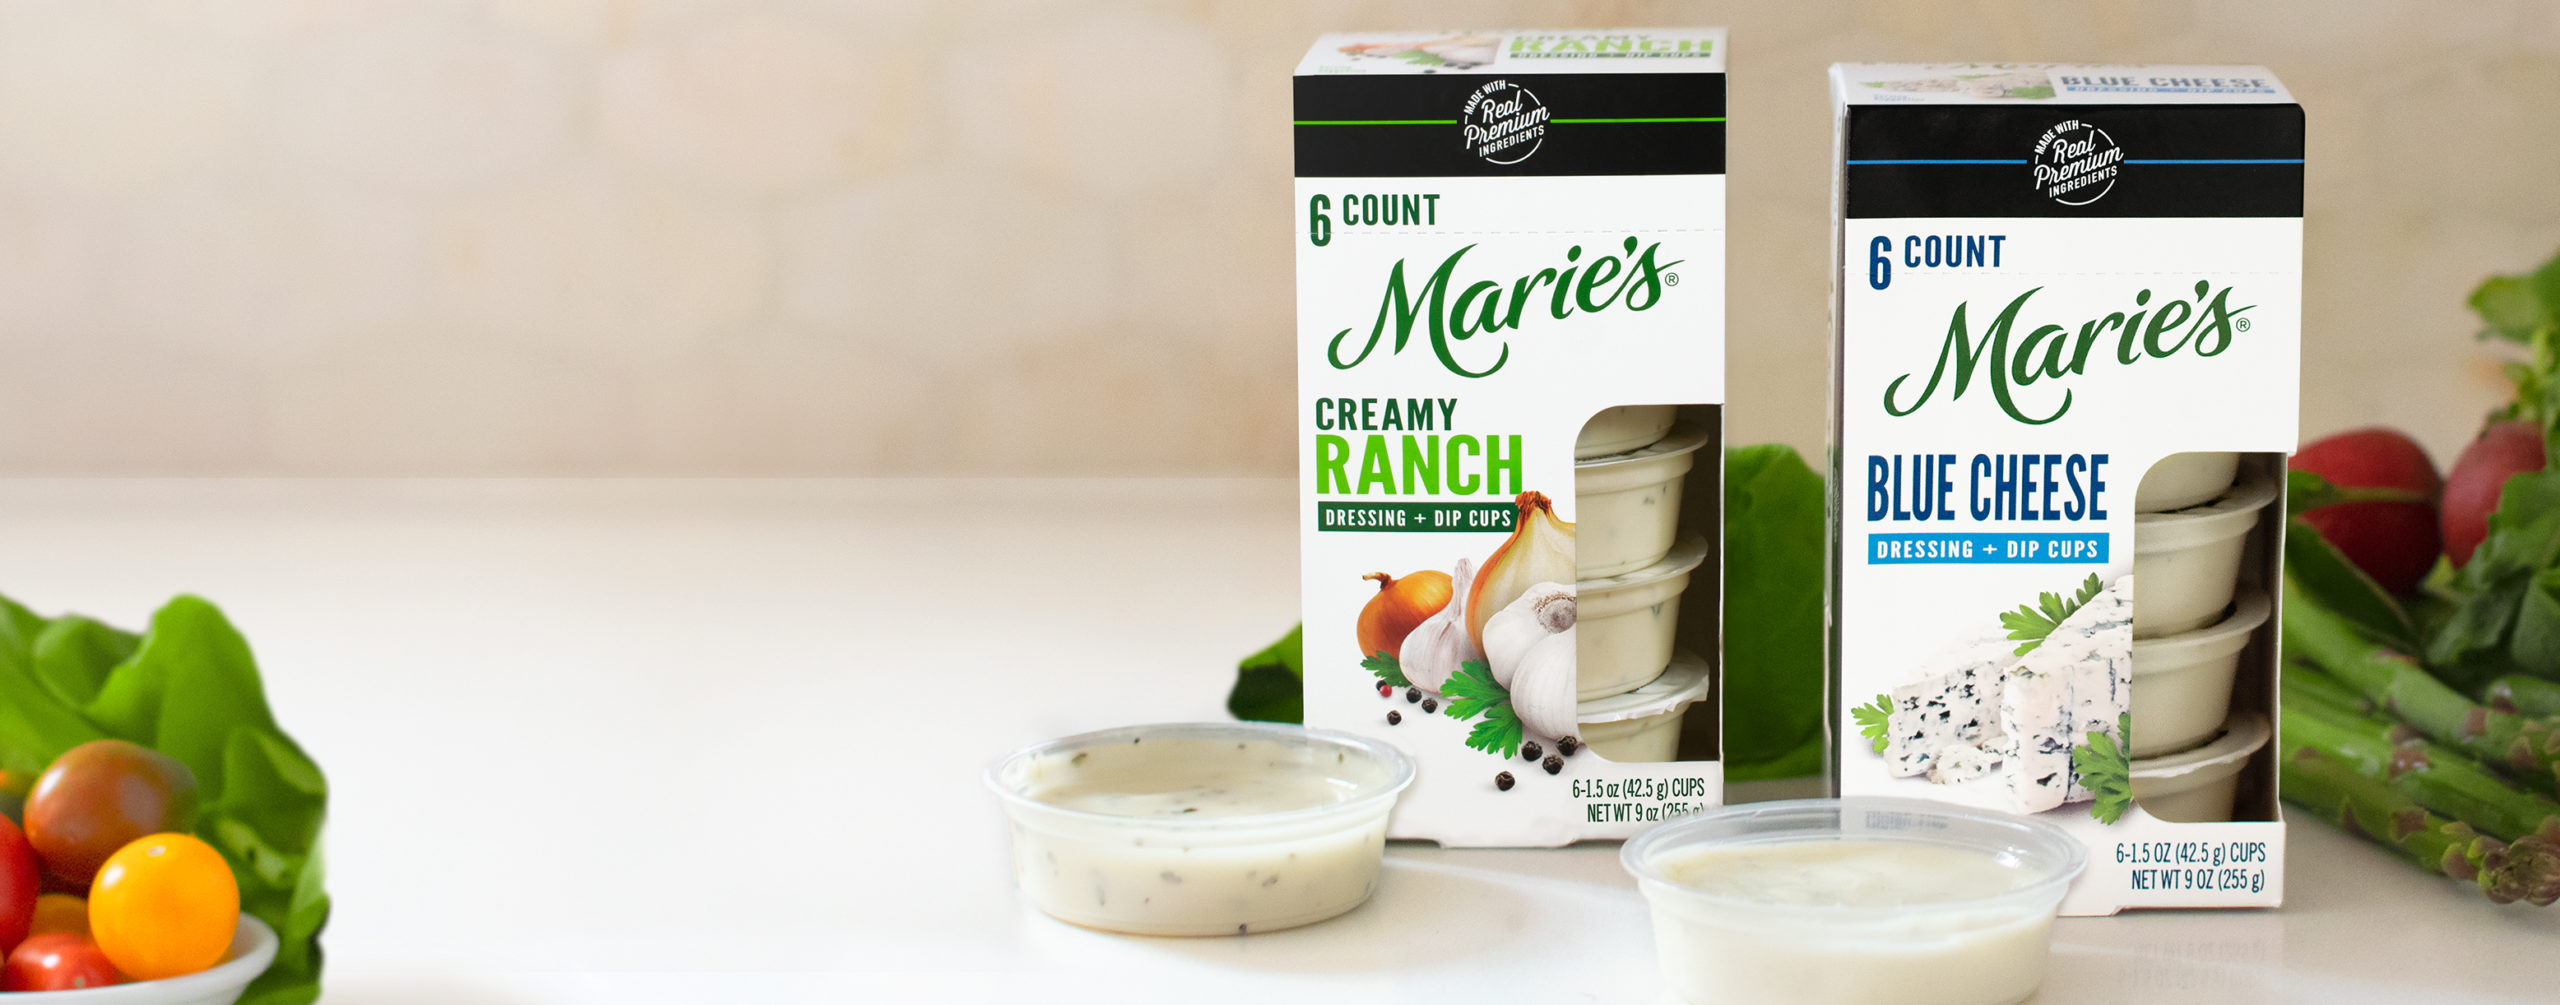 Marie's Dipping Cups, Blue Cheese and Creamy Ranch single-serving dipping cups perfect for on-the-go snacking.